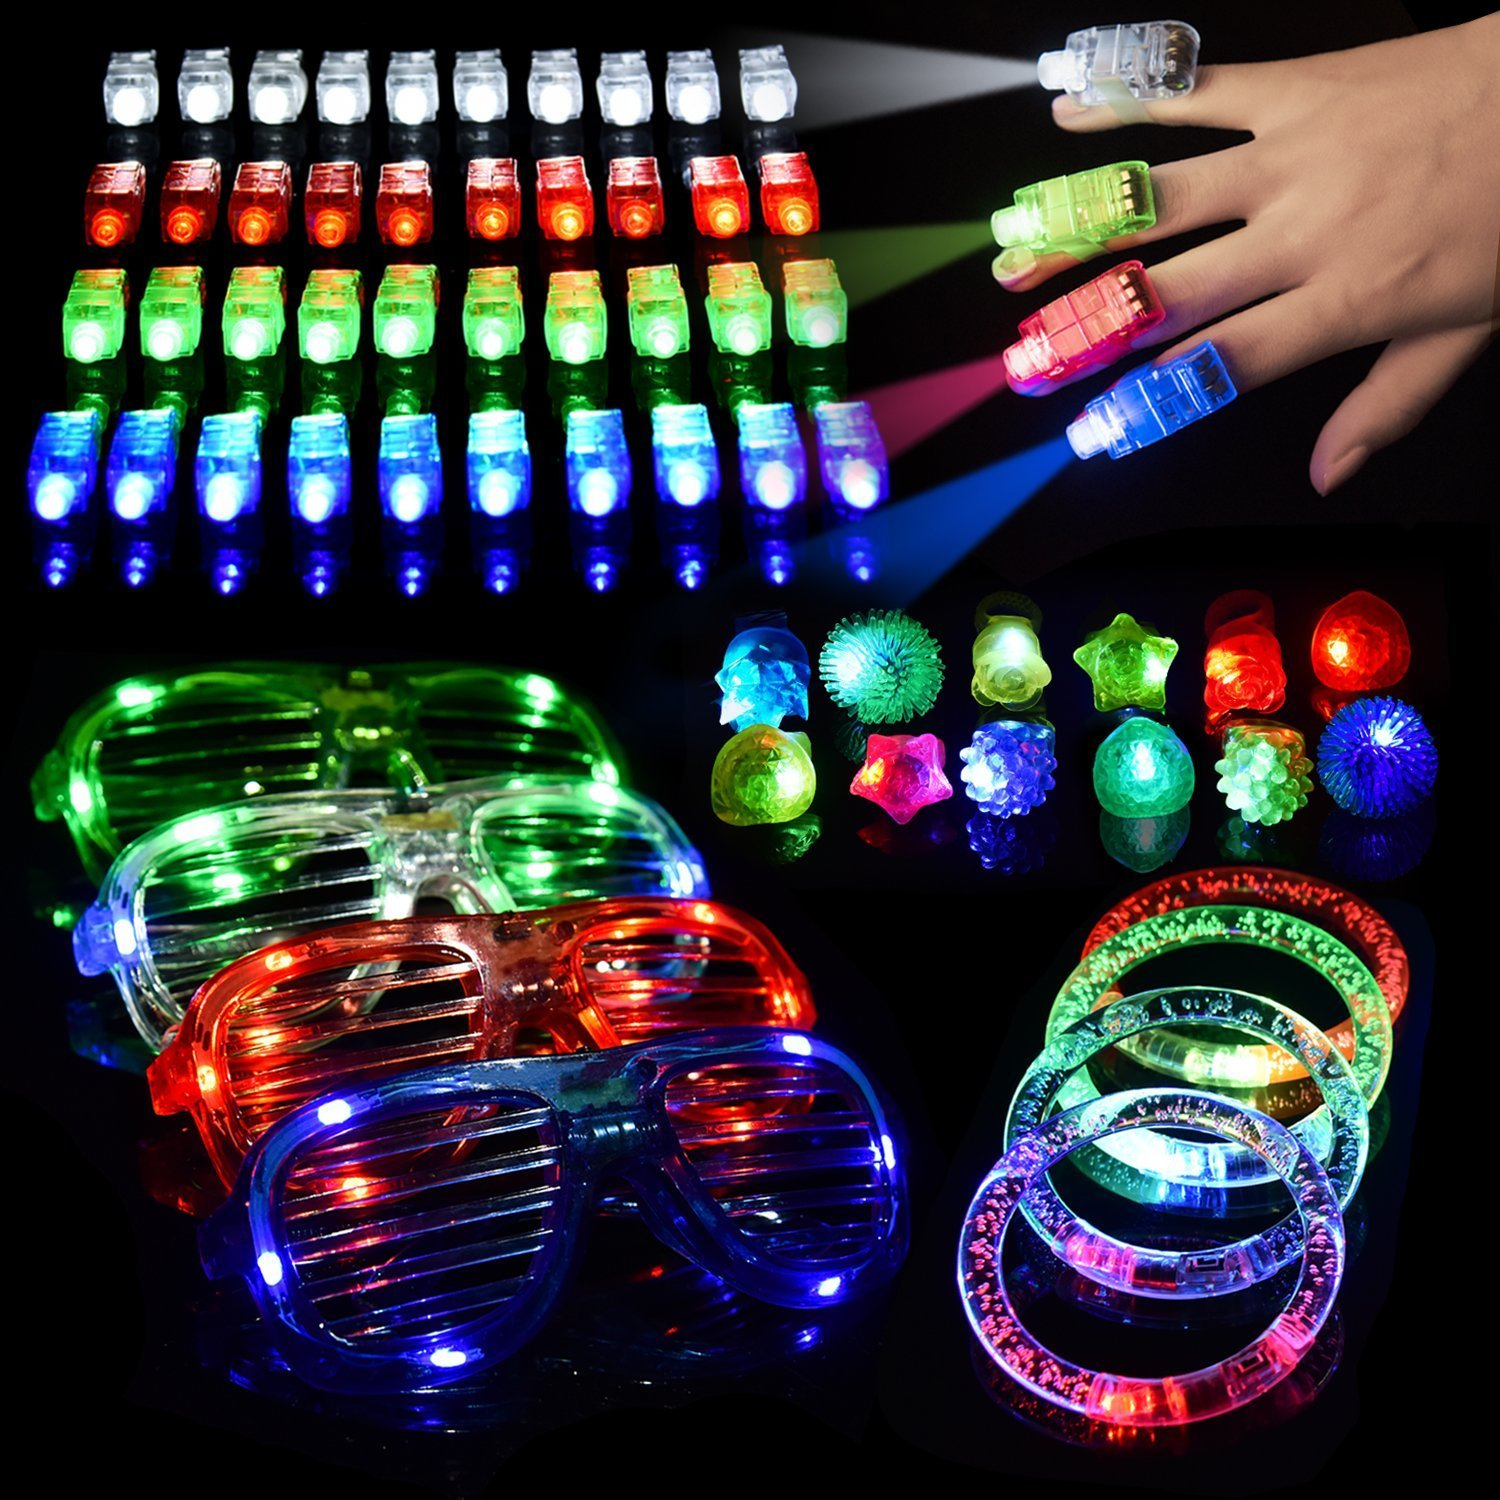 FUN LITTLE TOYS 60 PCS LED Light Up Toys Glow in the Dark Party Supplies, Party Favors for Kids with 40 LED Finger Lights, 12 Flashing Bumpy Rings, 4 Bracelets and 4 Flashing Slotted Shades Glasses